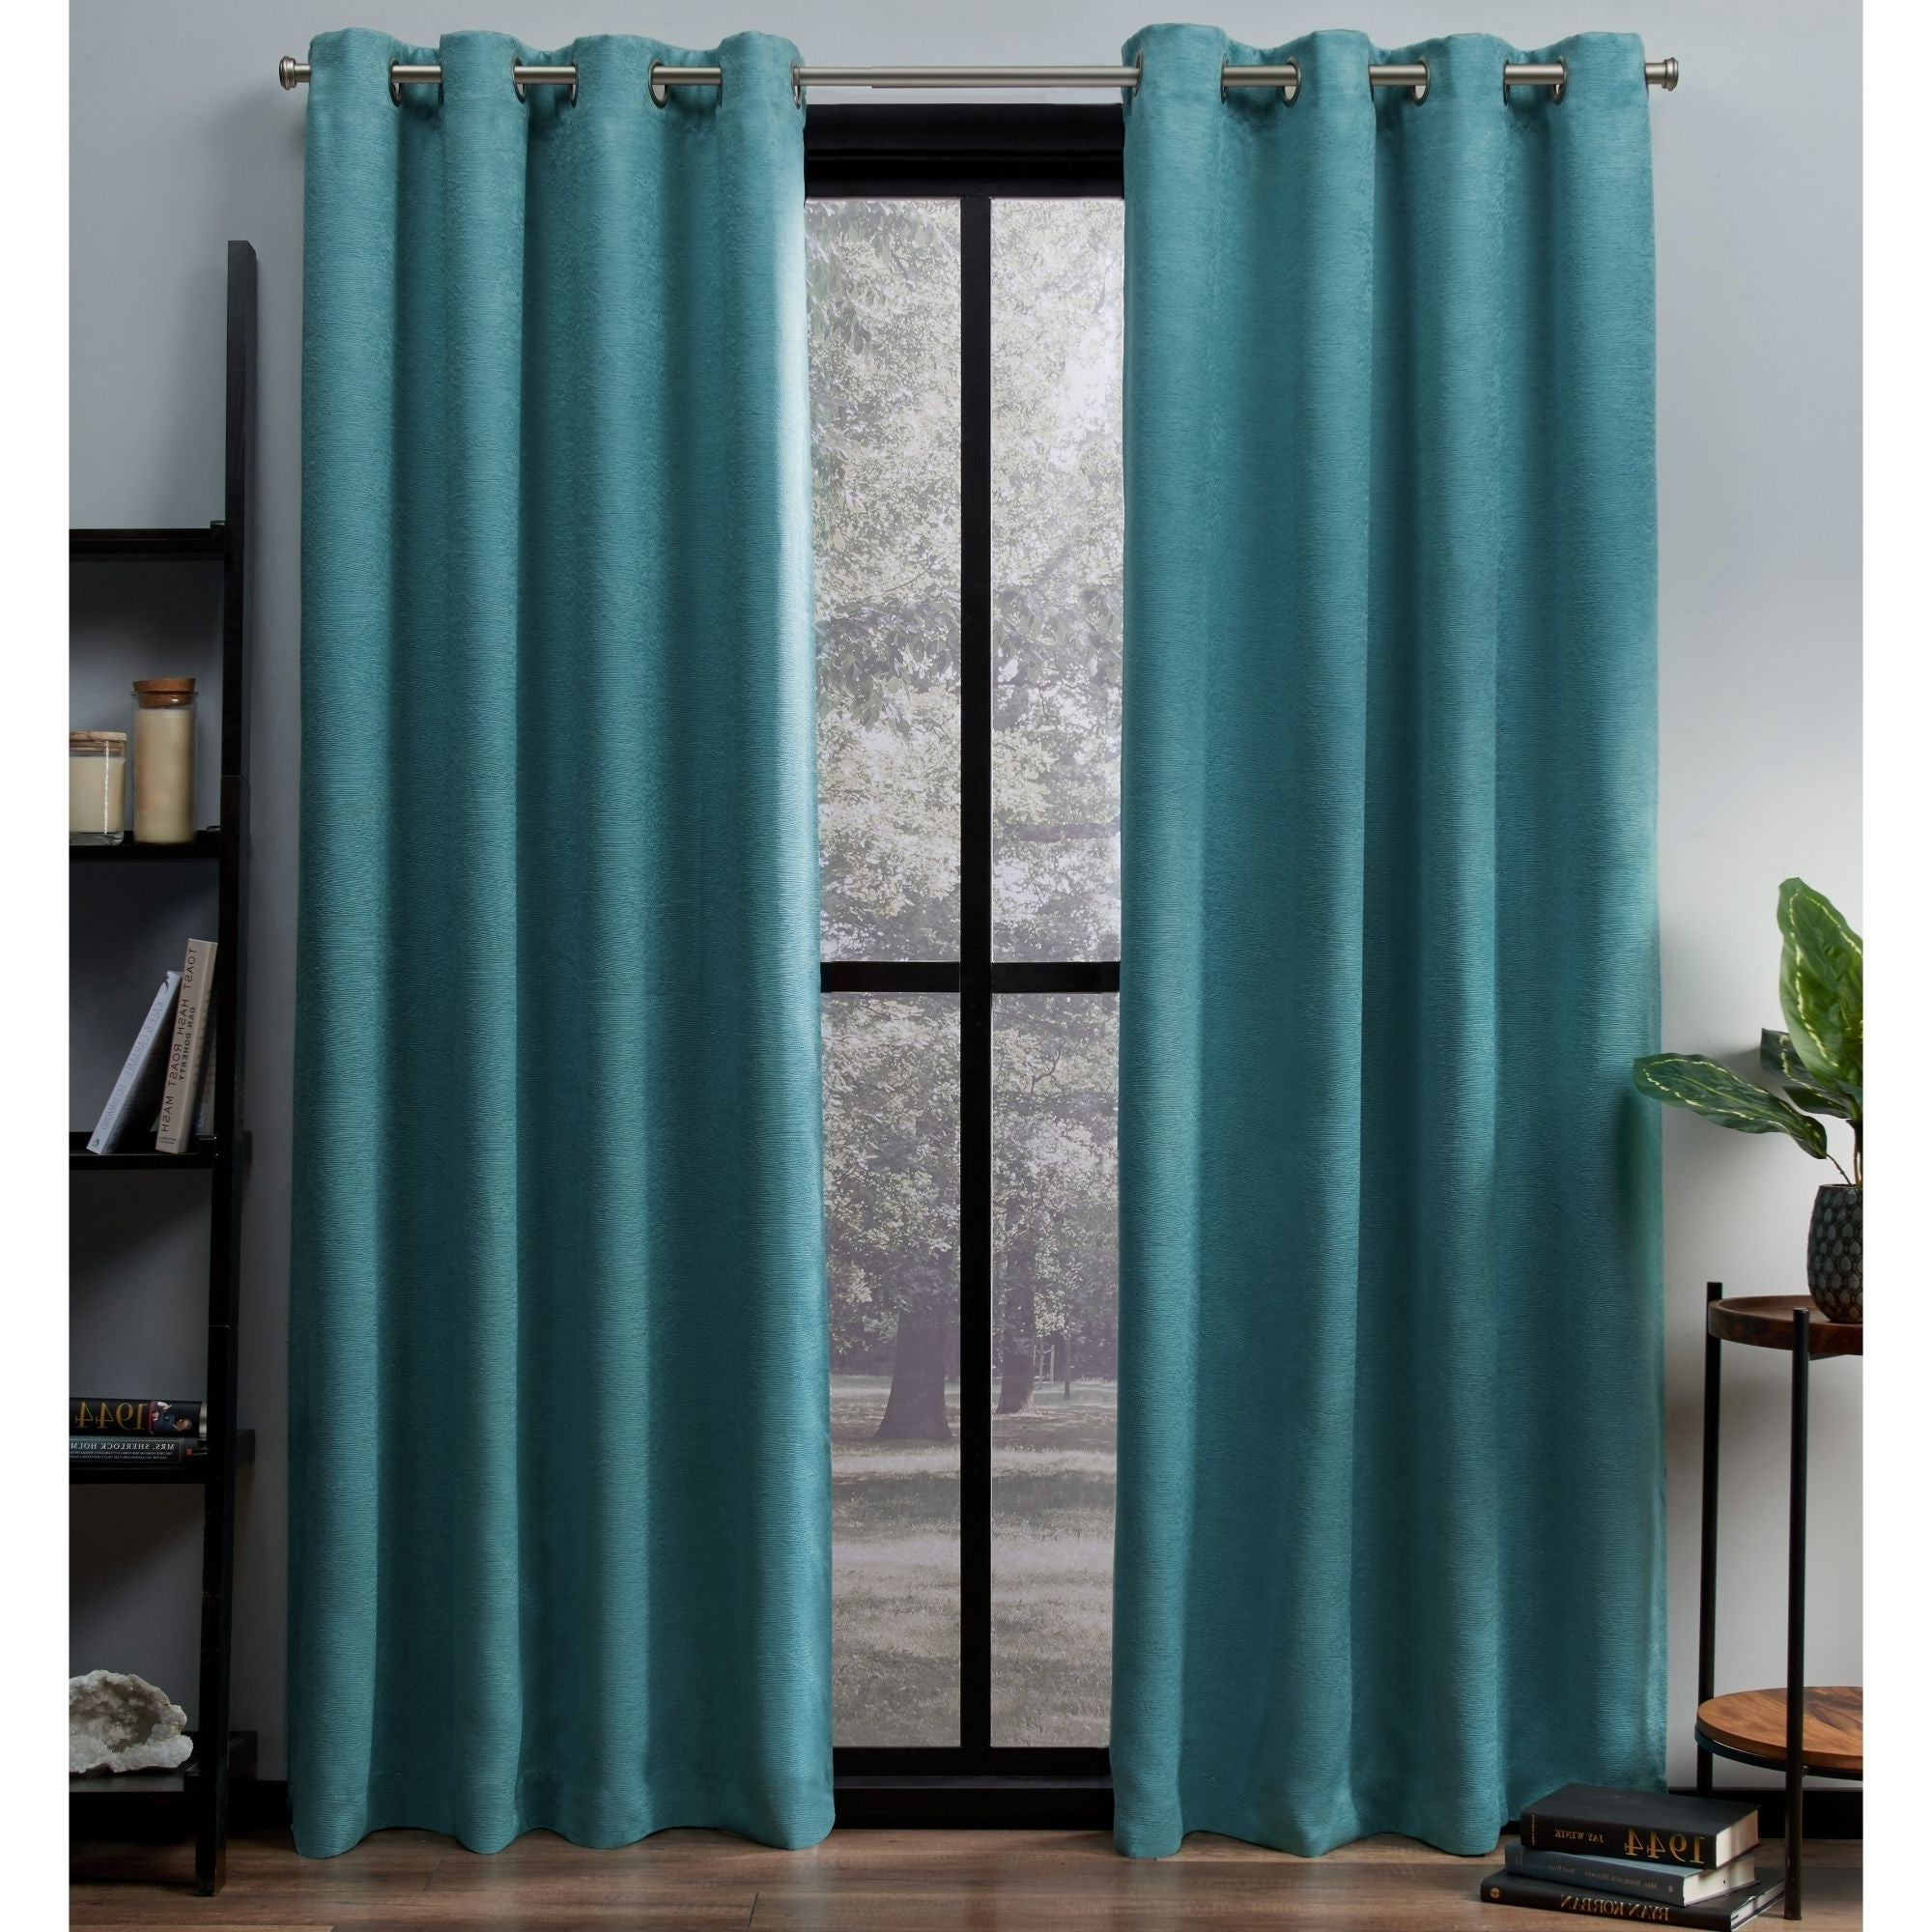 Oxford Sateen Woven Blackout Grommet Top Curtain Panel Pairs For Preferred Ati Home Oxford Sateen Woven Blackout Grommet Top Curtain Panel Pair (View 11 of 20)